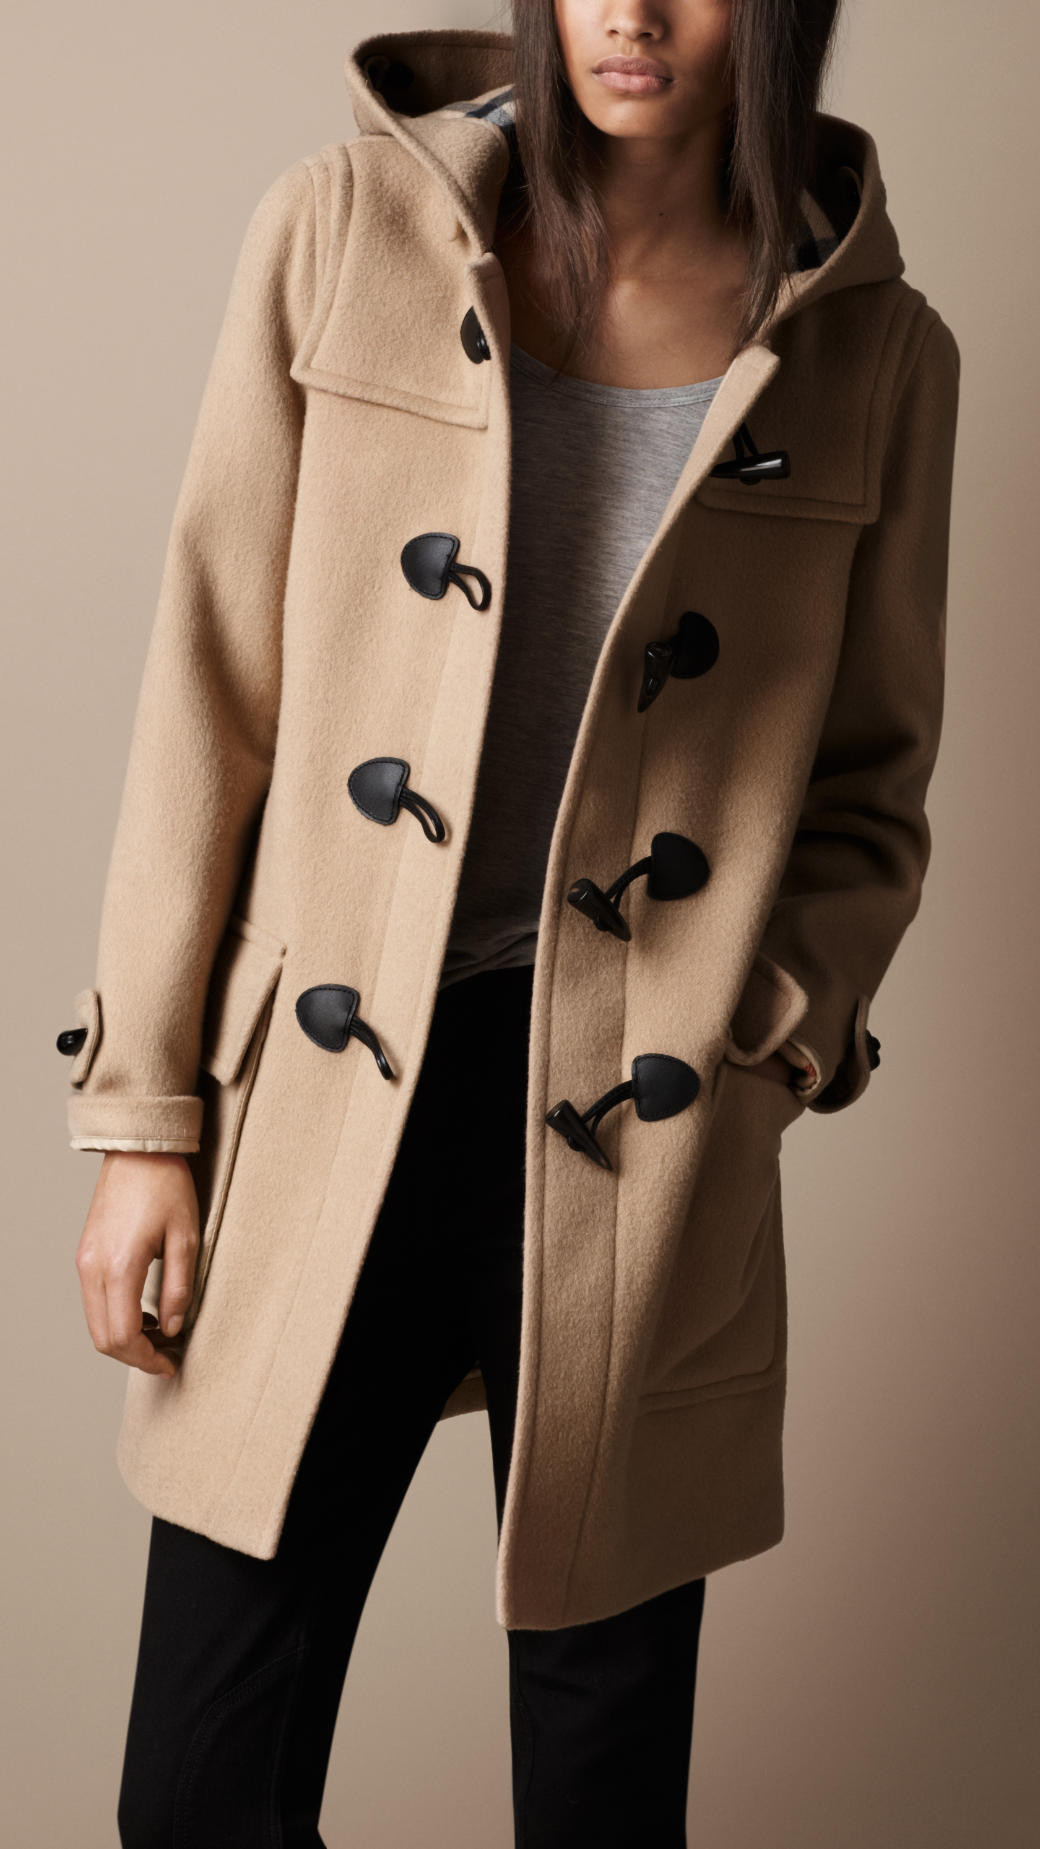 You searched for: wool duffle coat! Etsy is the home to thousands of handmade, vintage, and one-of-a-kind products and gifts related to your search. No matter what you're looking for or where you are in the world, our global marketplace of sellers can help you find unique and affordable options. Let's get started!